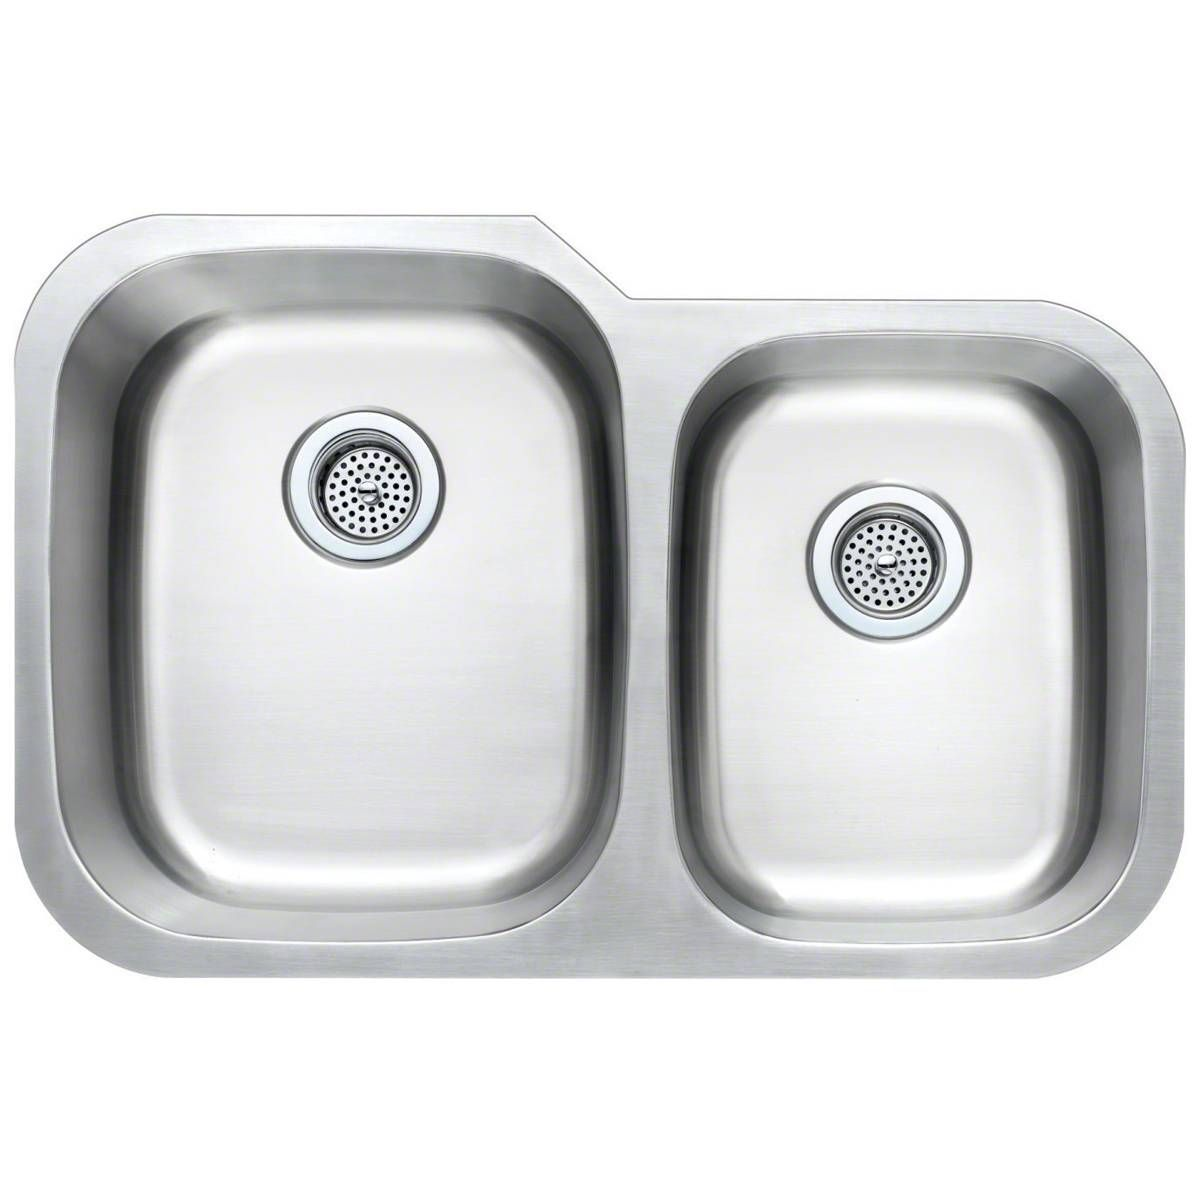 double bowl 60 40 3120s kitchen double bowl kitchen sink rh pinterest com